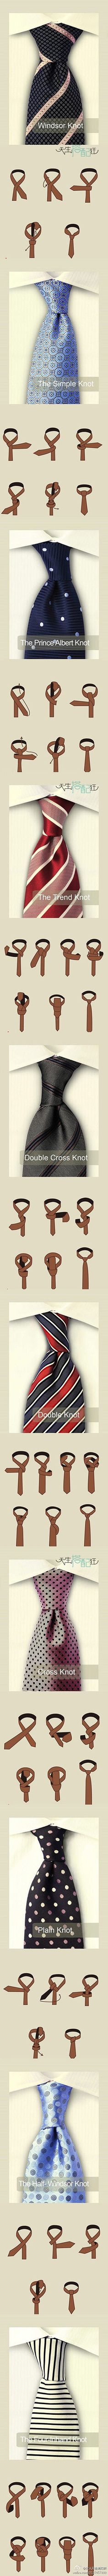 Ways To Tie a Tie. Never hurts for a girl to know how to do this!